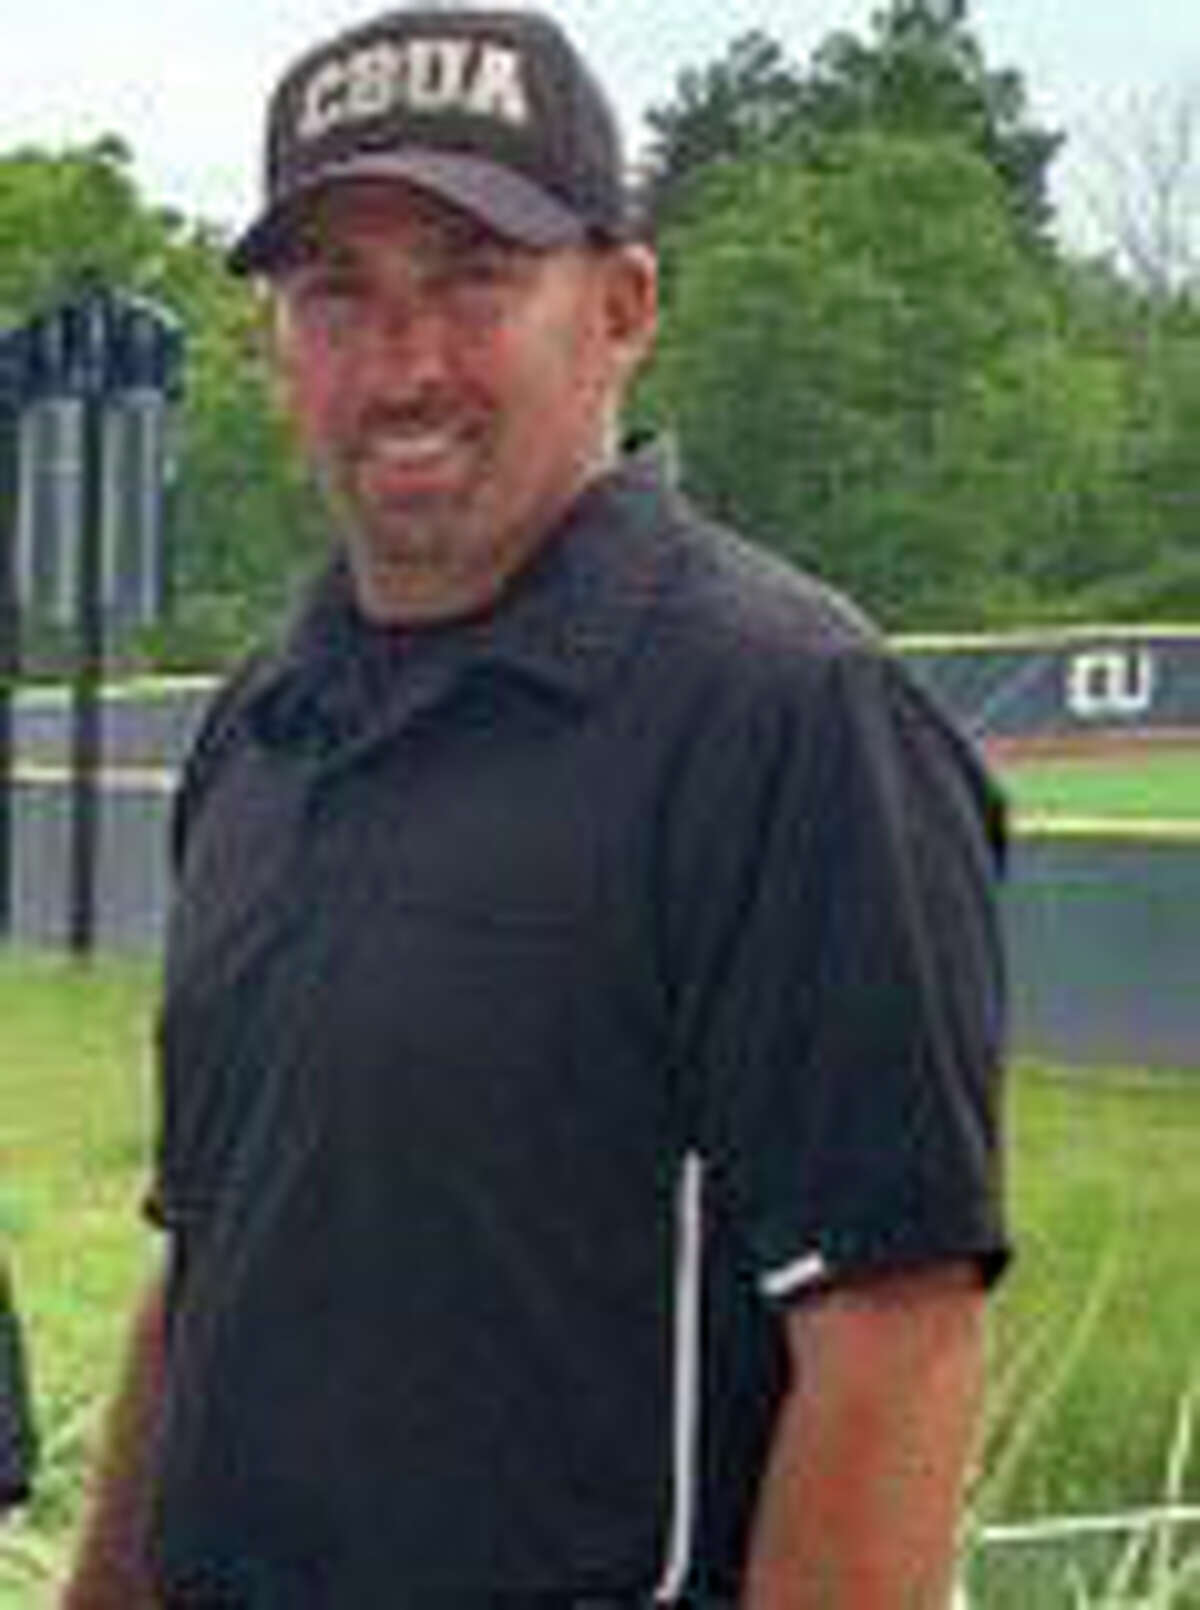 Umpire and referee Wade Male was a graduate of Morley Stanwood.